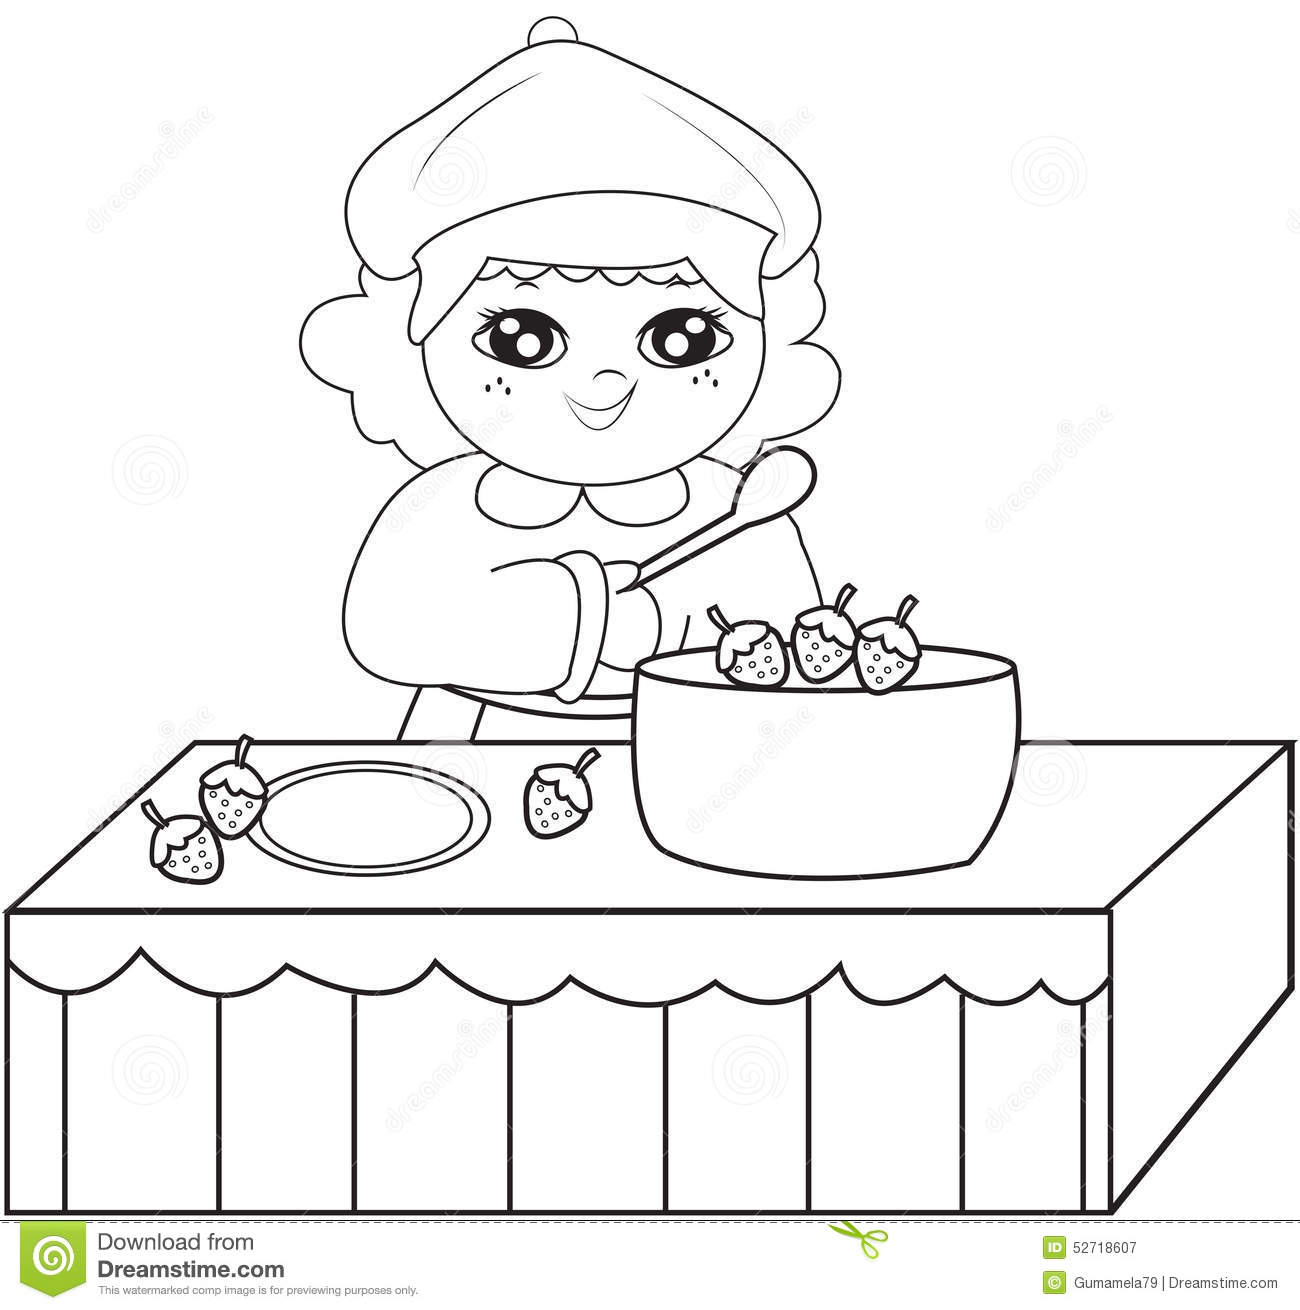 Preschool Cooking Coloring Pages Coloring Page